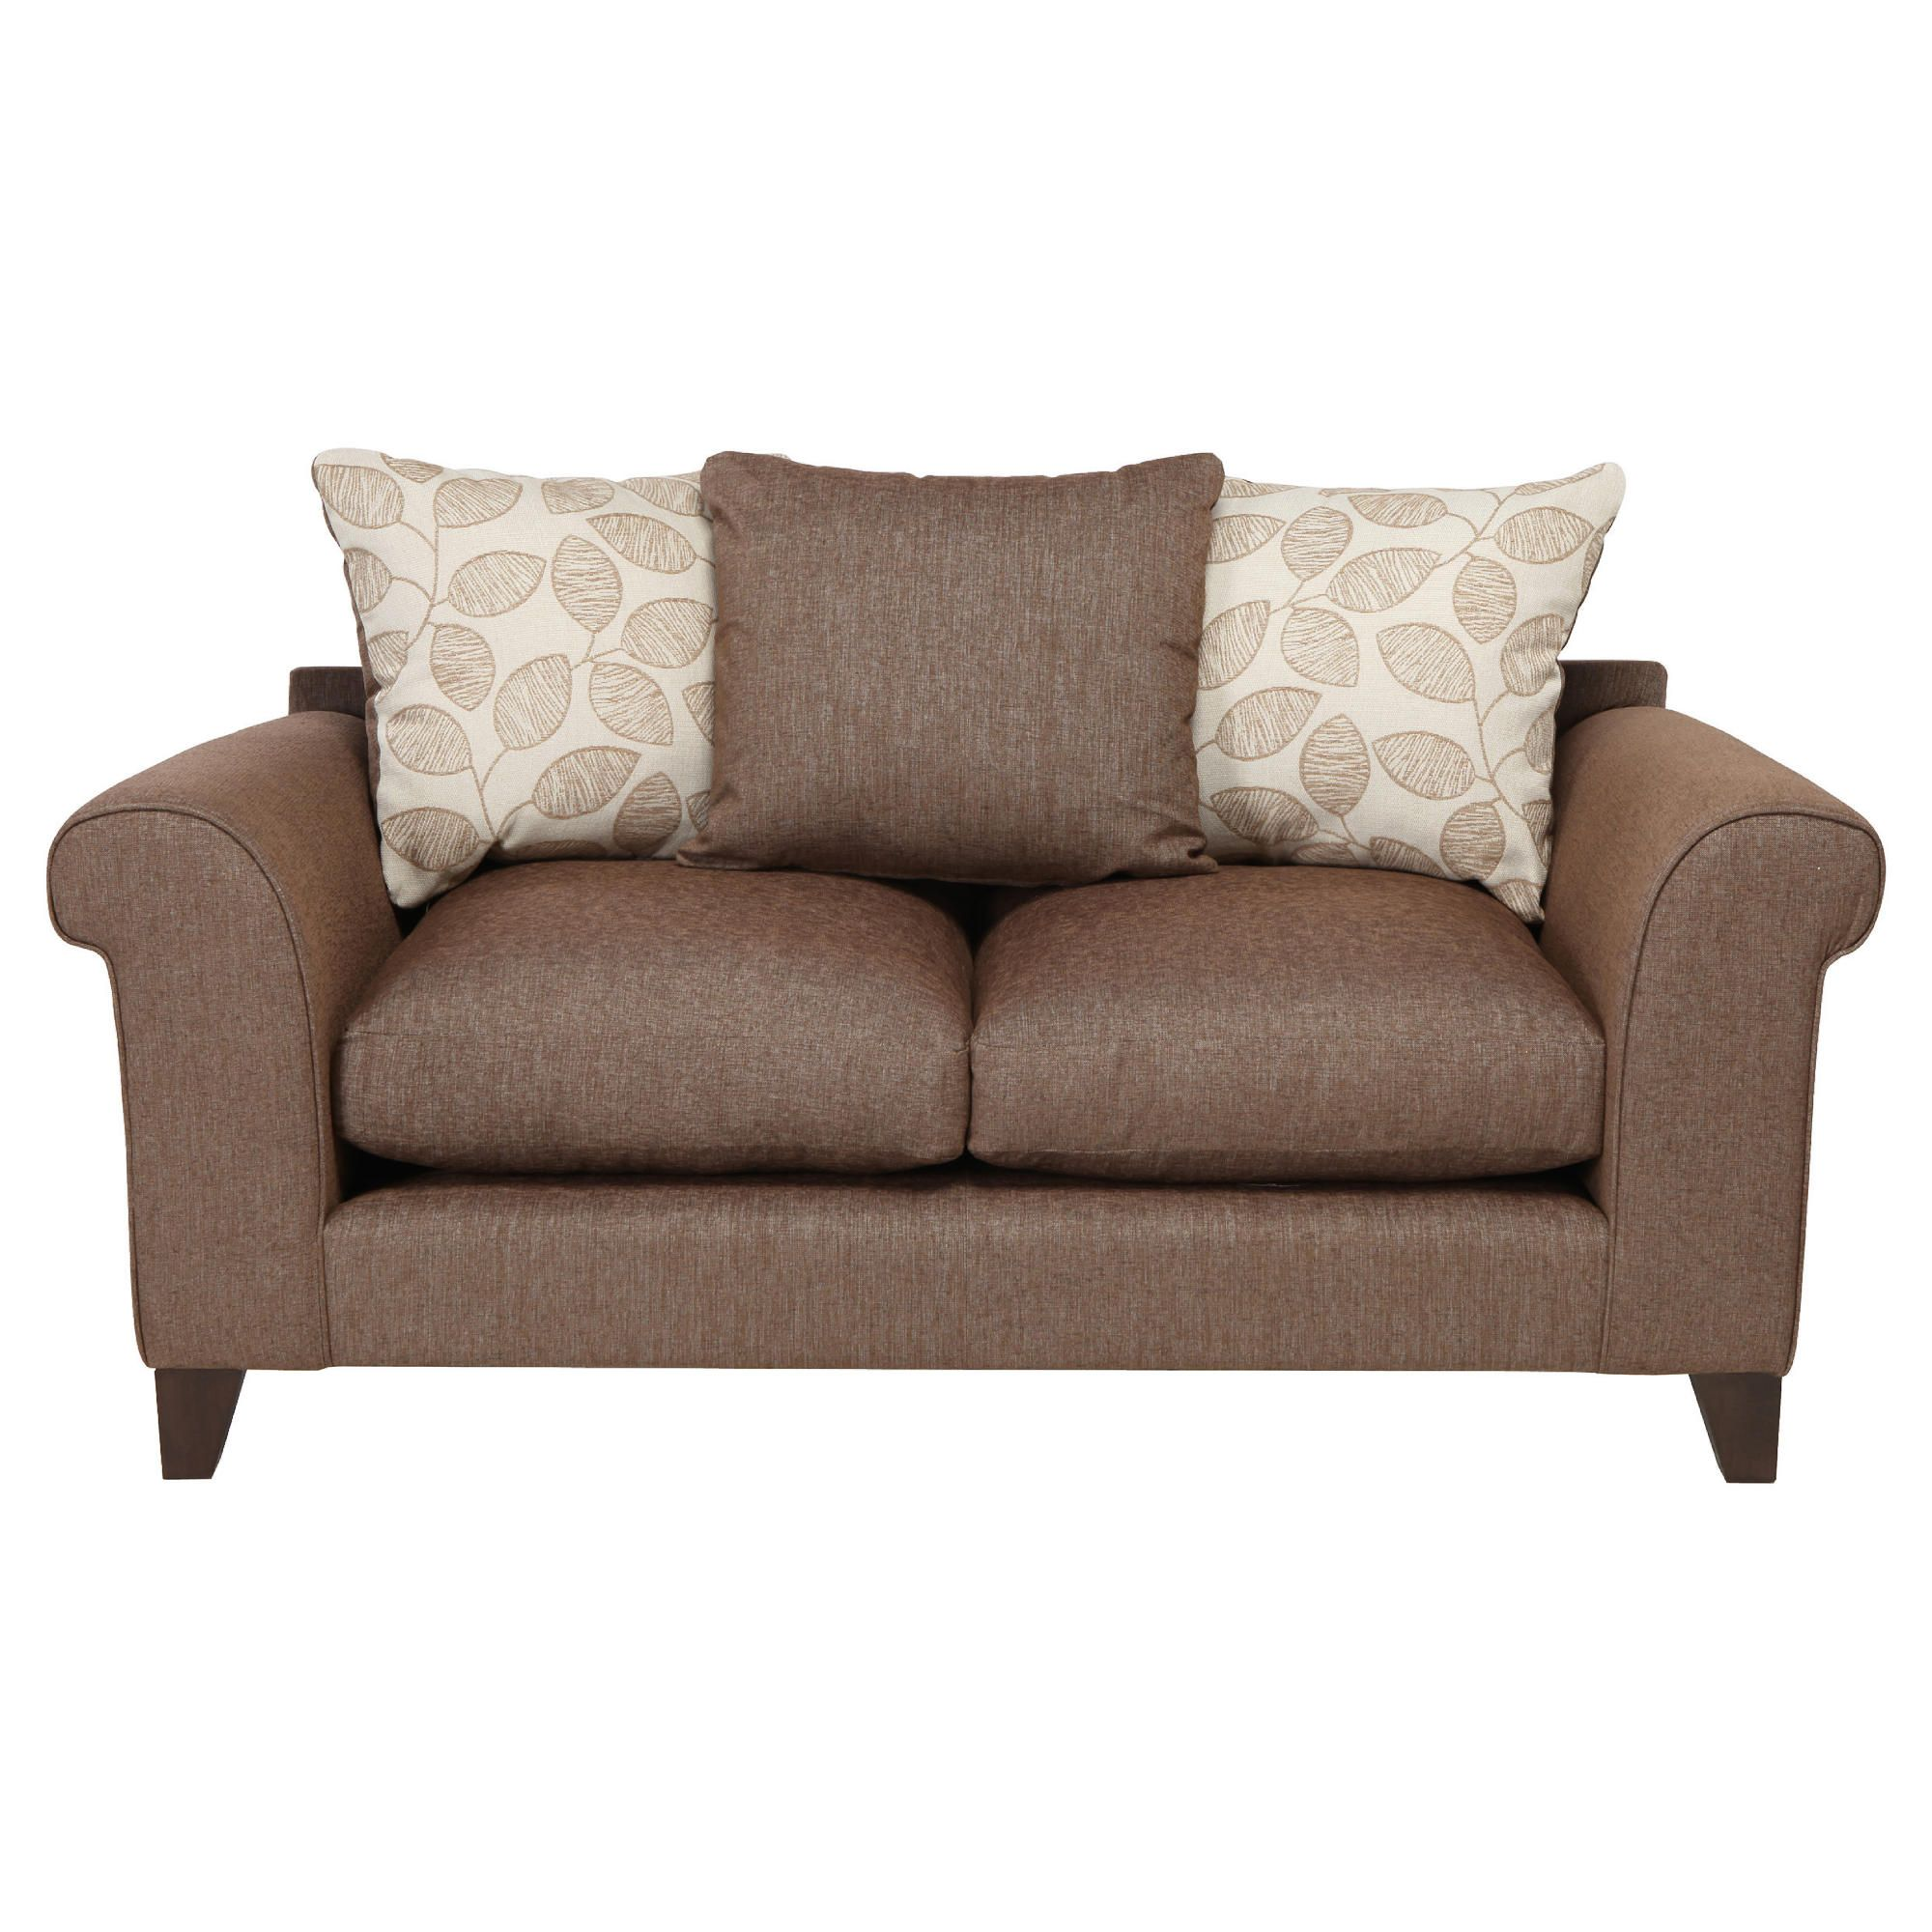 Amersham Small Scatter Back Sofa Mocha at Tesco Direct